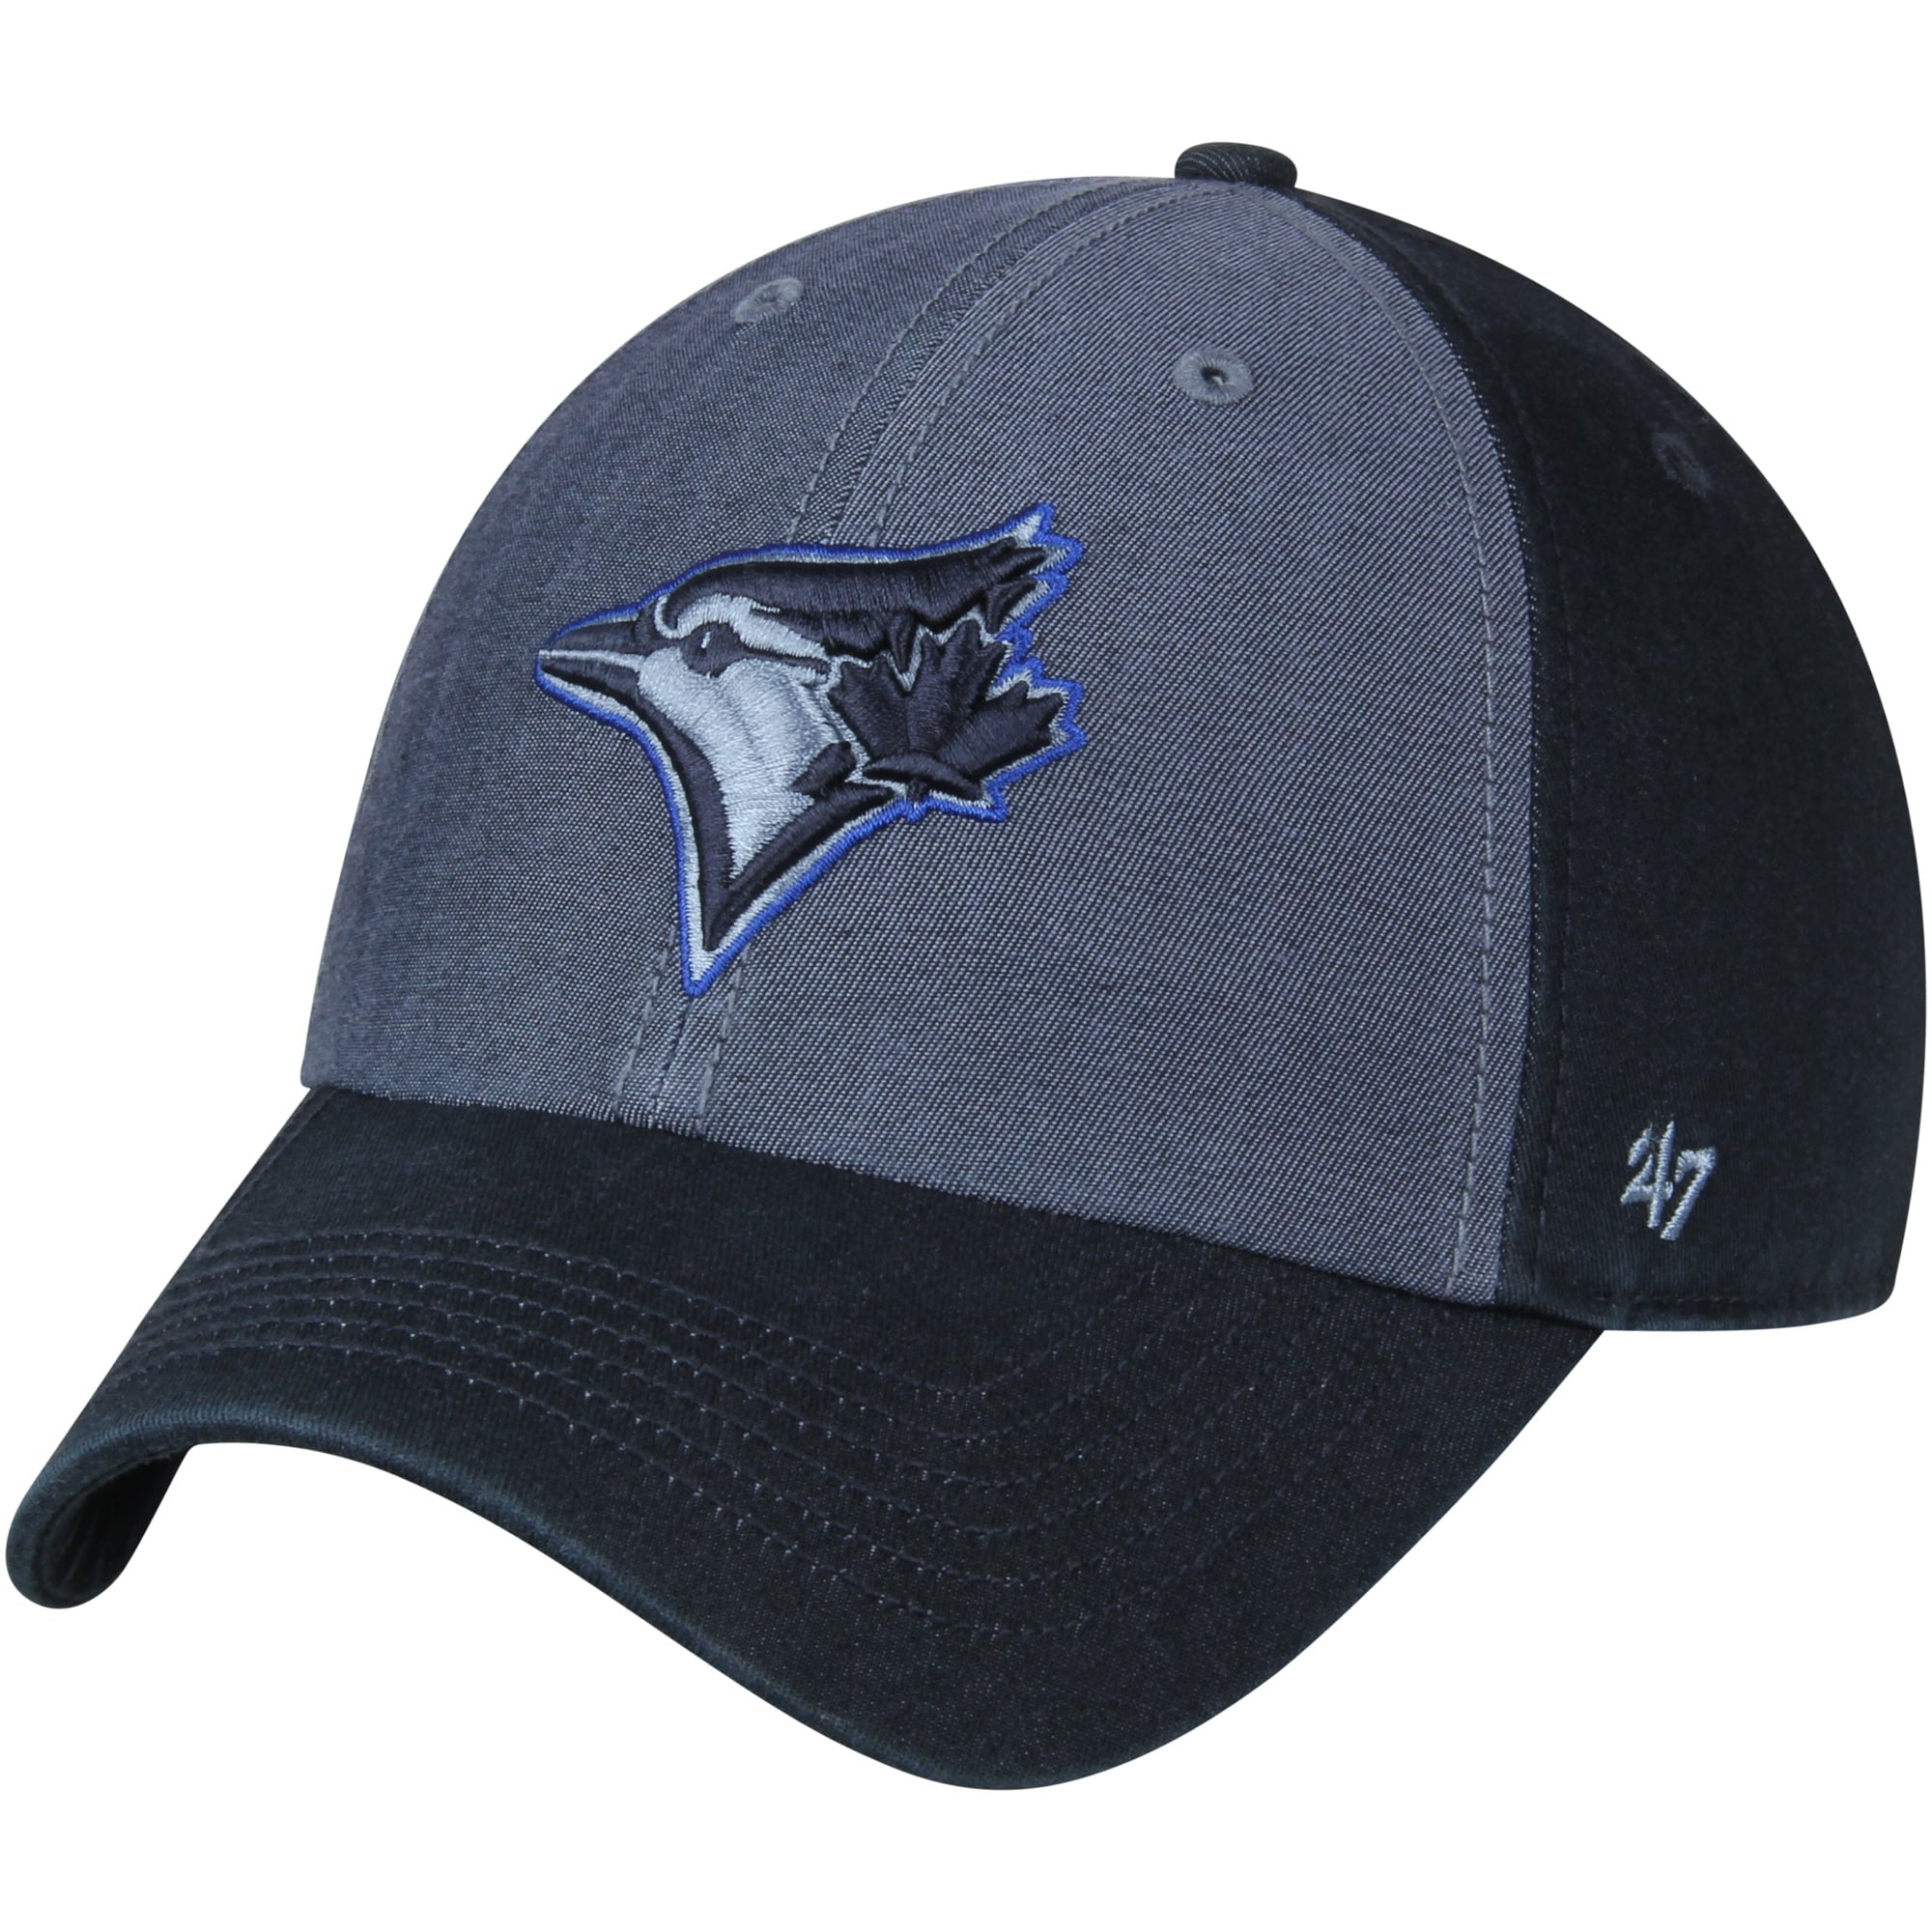 Toronto Blue Jays '47 Encoder Franchise Fitted Hat - Heathered Blue/Navy